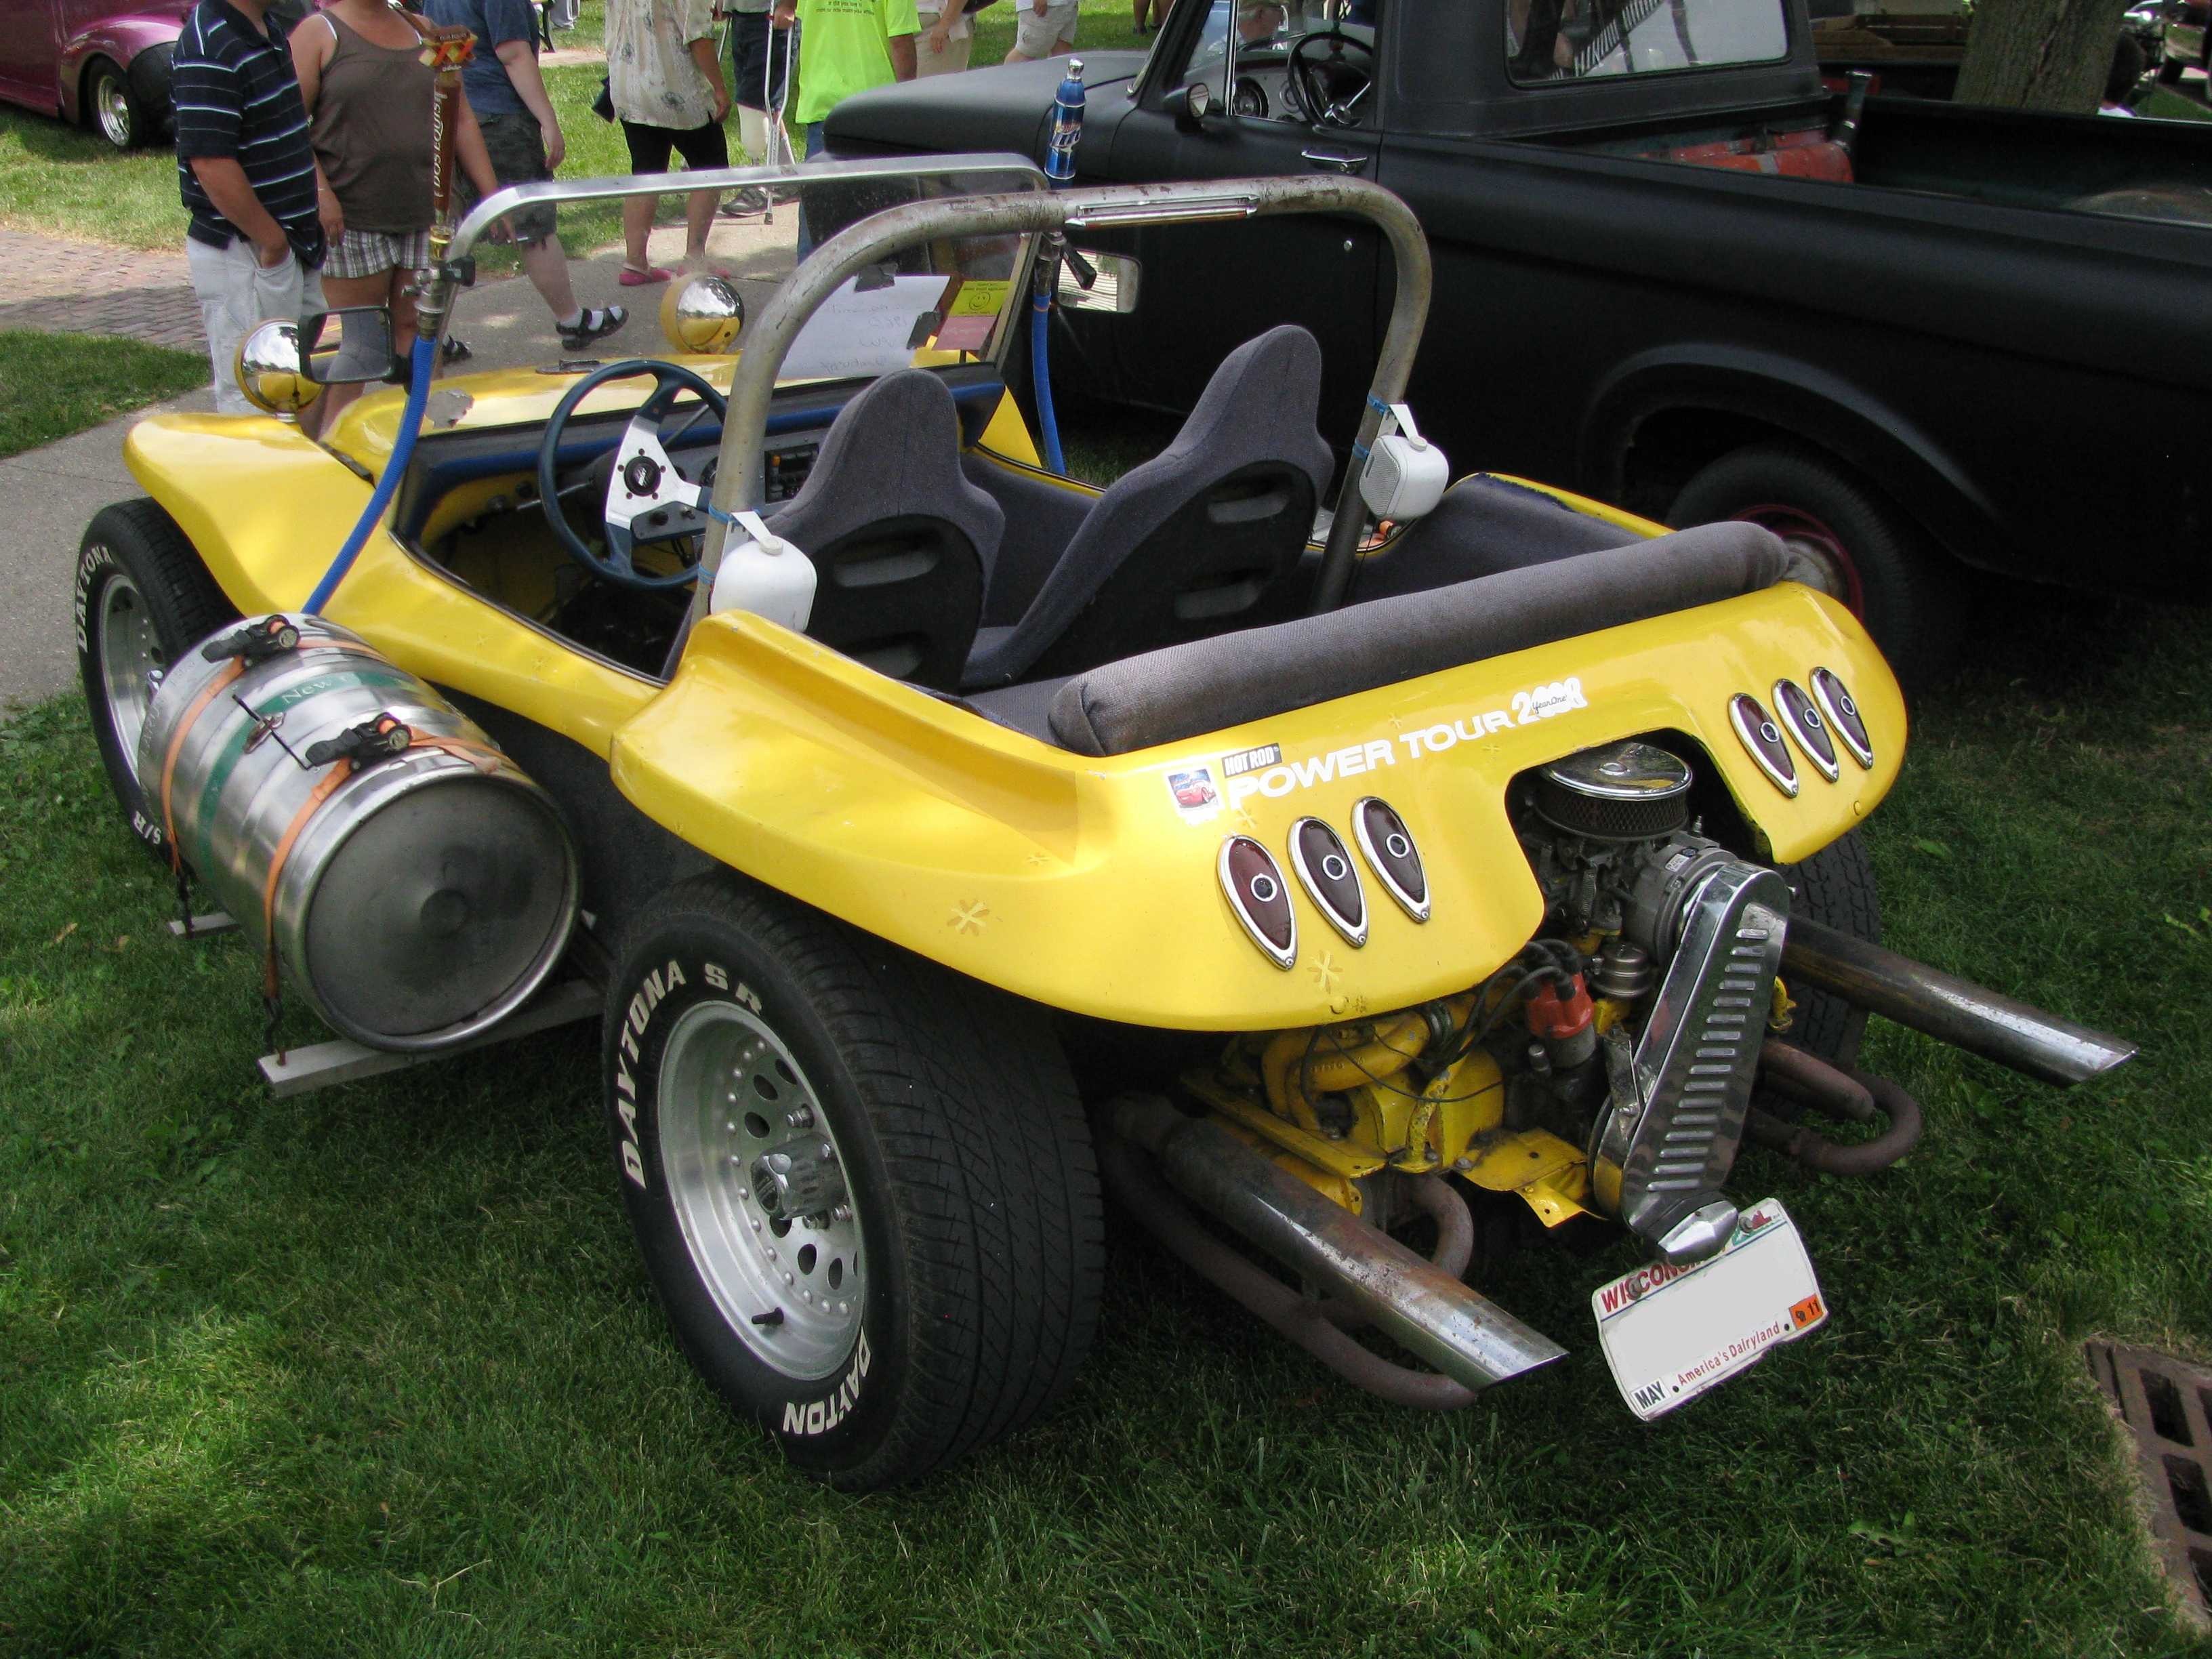 Dune Buggies - The Crittenden Automotive Library